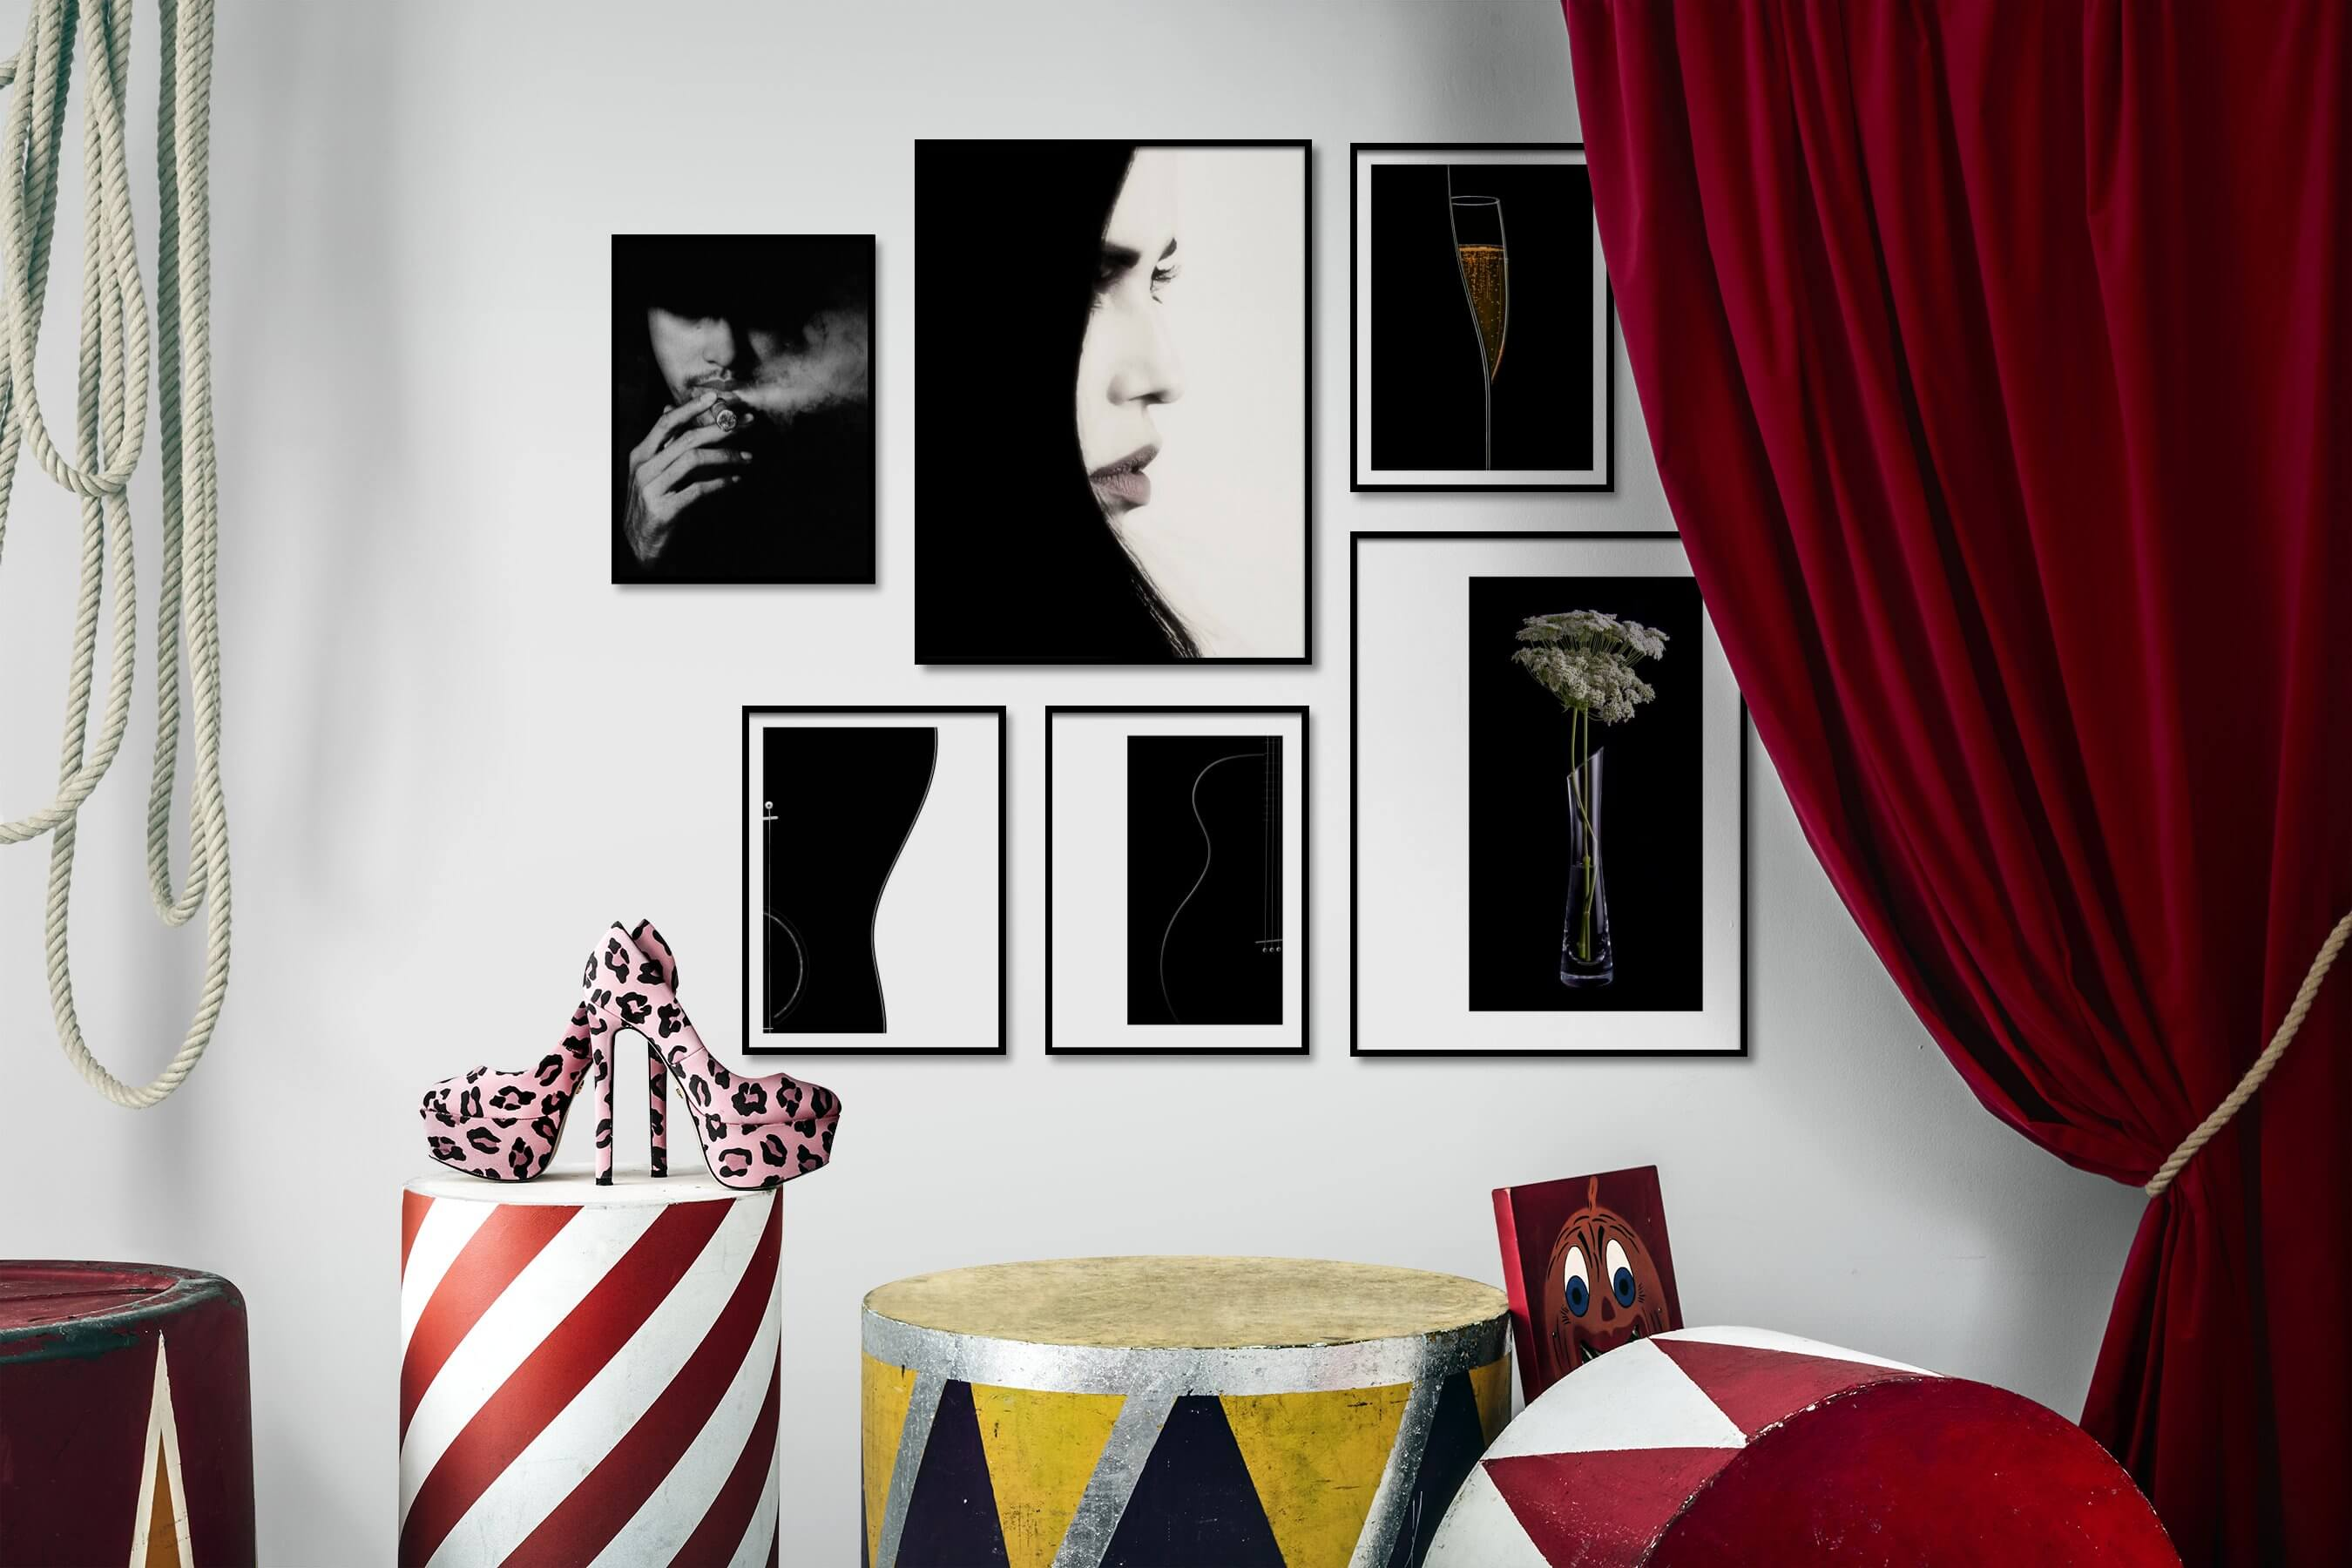 Gallery wall idea with six framed pictures arranged on a wall depicting Fashion & Beauty, Black & White, Dark Tones, For the Minimalist, Vintage, and Flowers & Plants